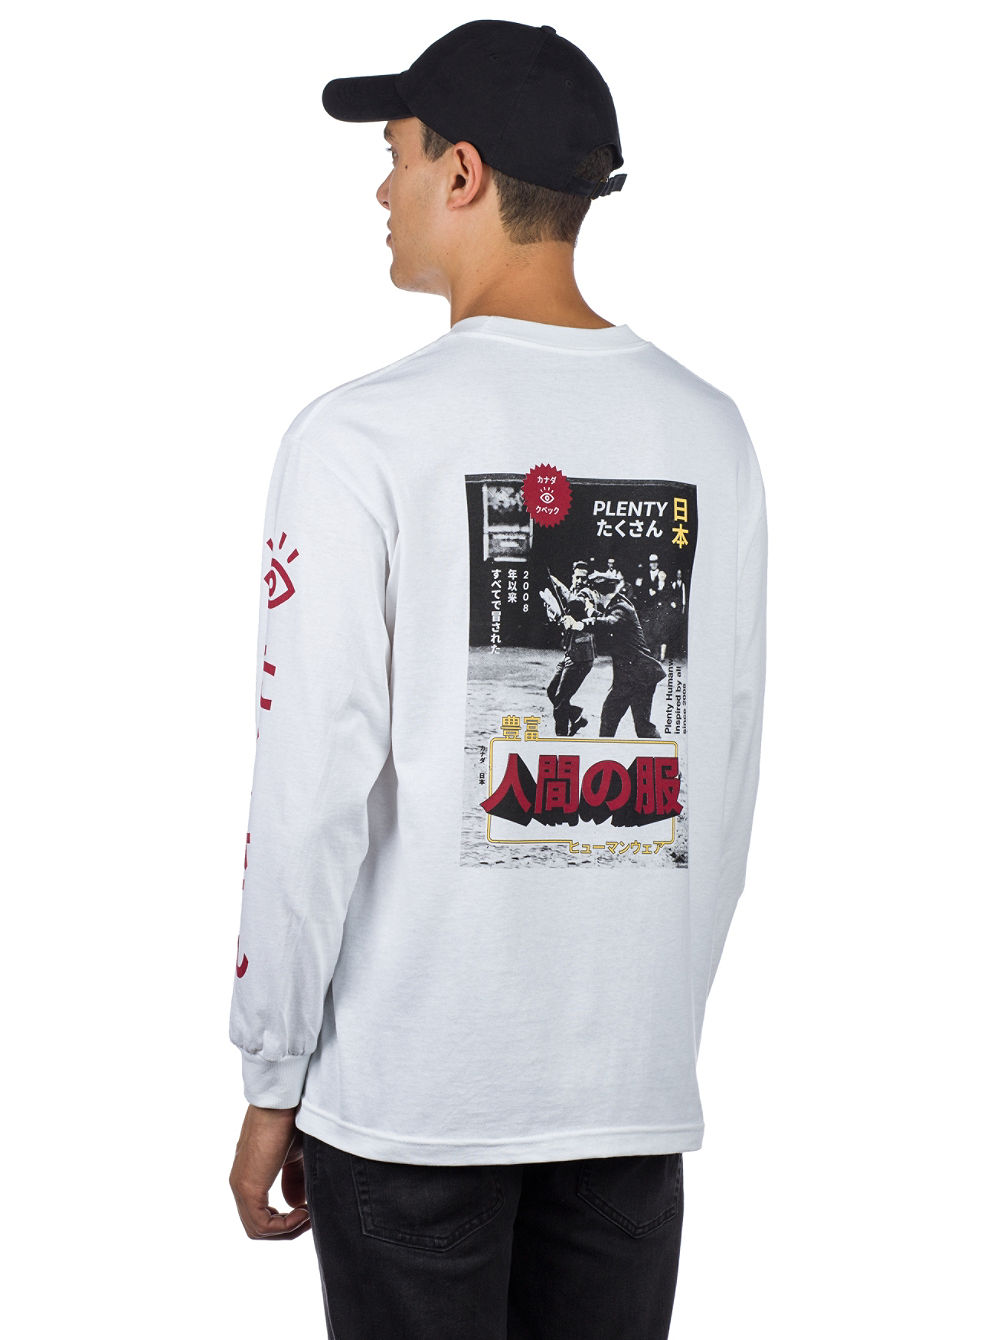 Atchie Long Sleeve T-Shirt